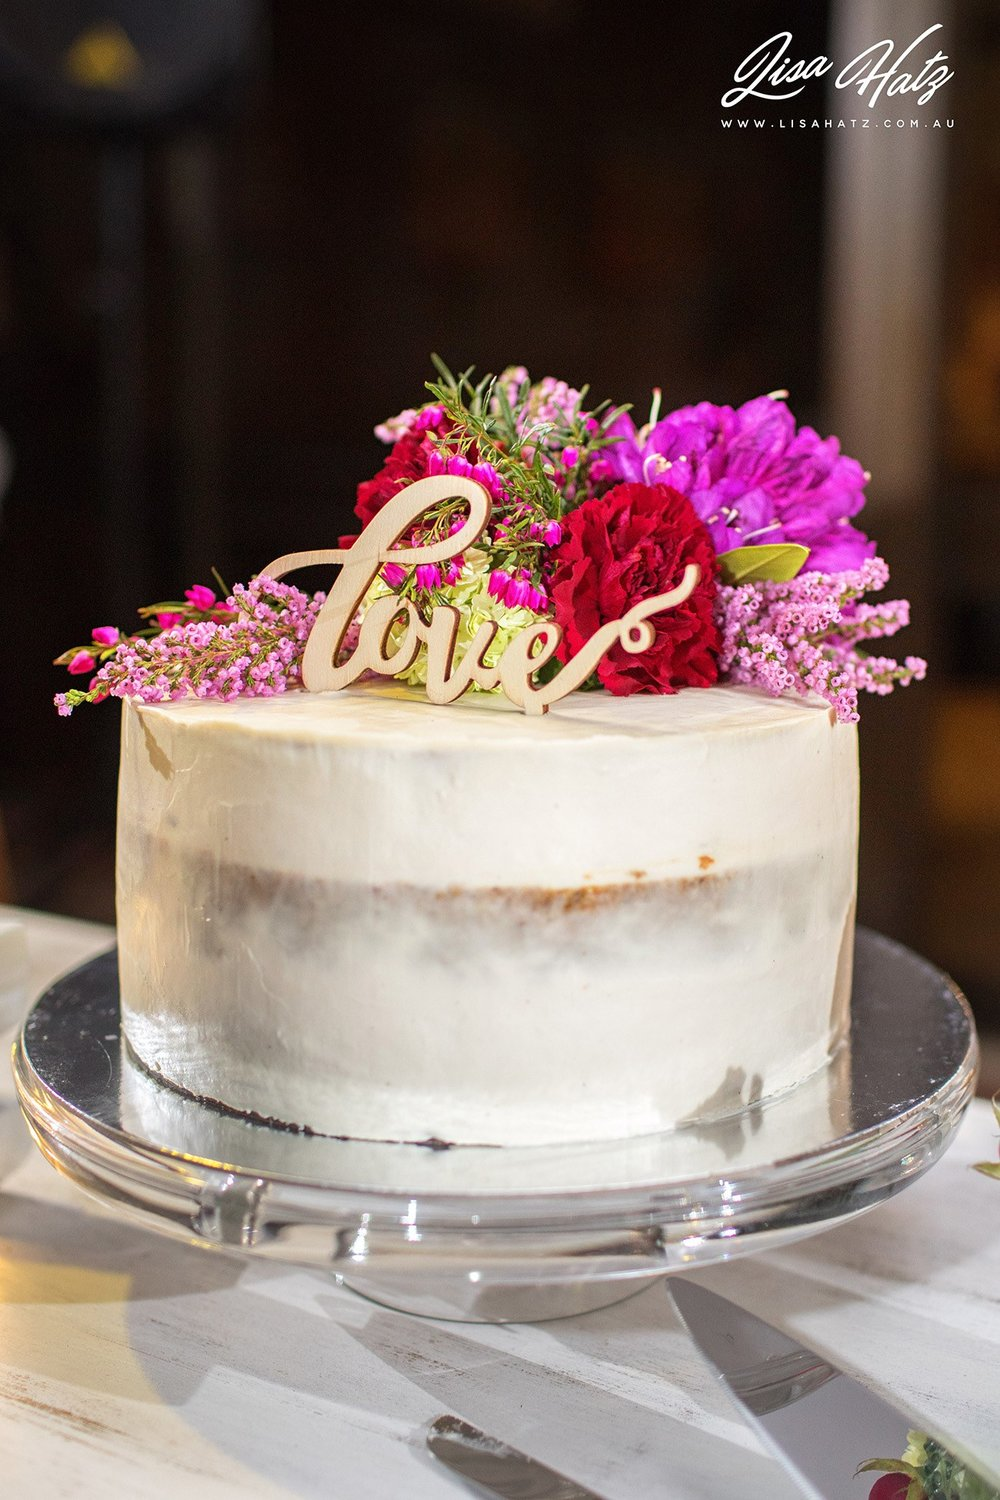 A non traditional wedding cake in every sense, layered carrot and walnut cake